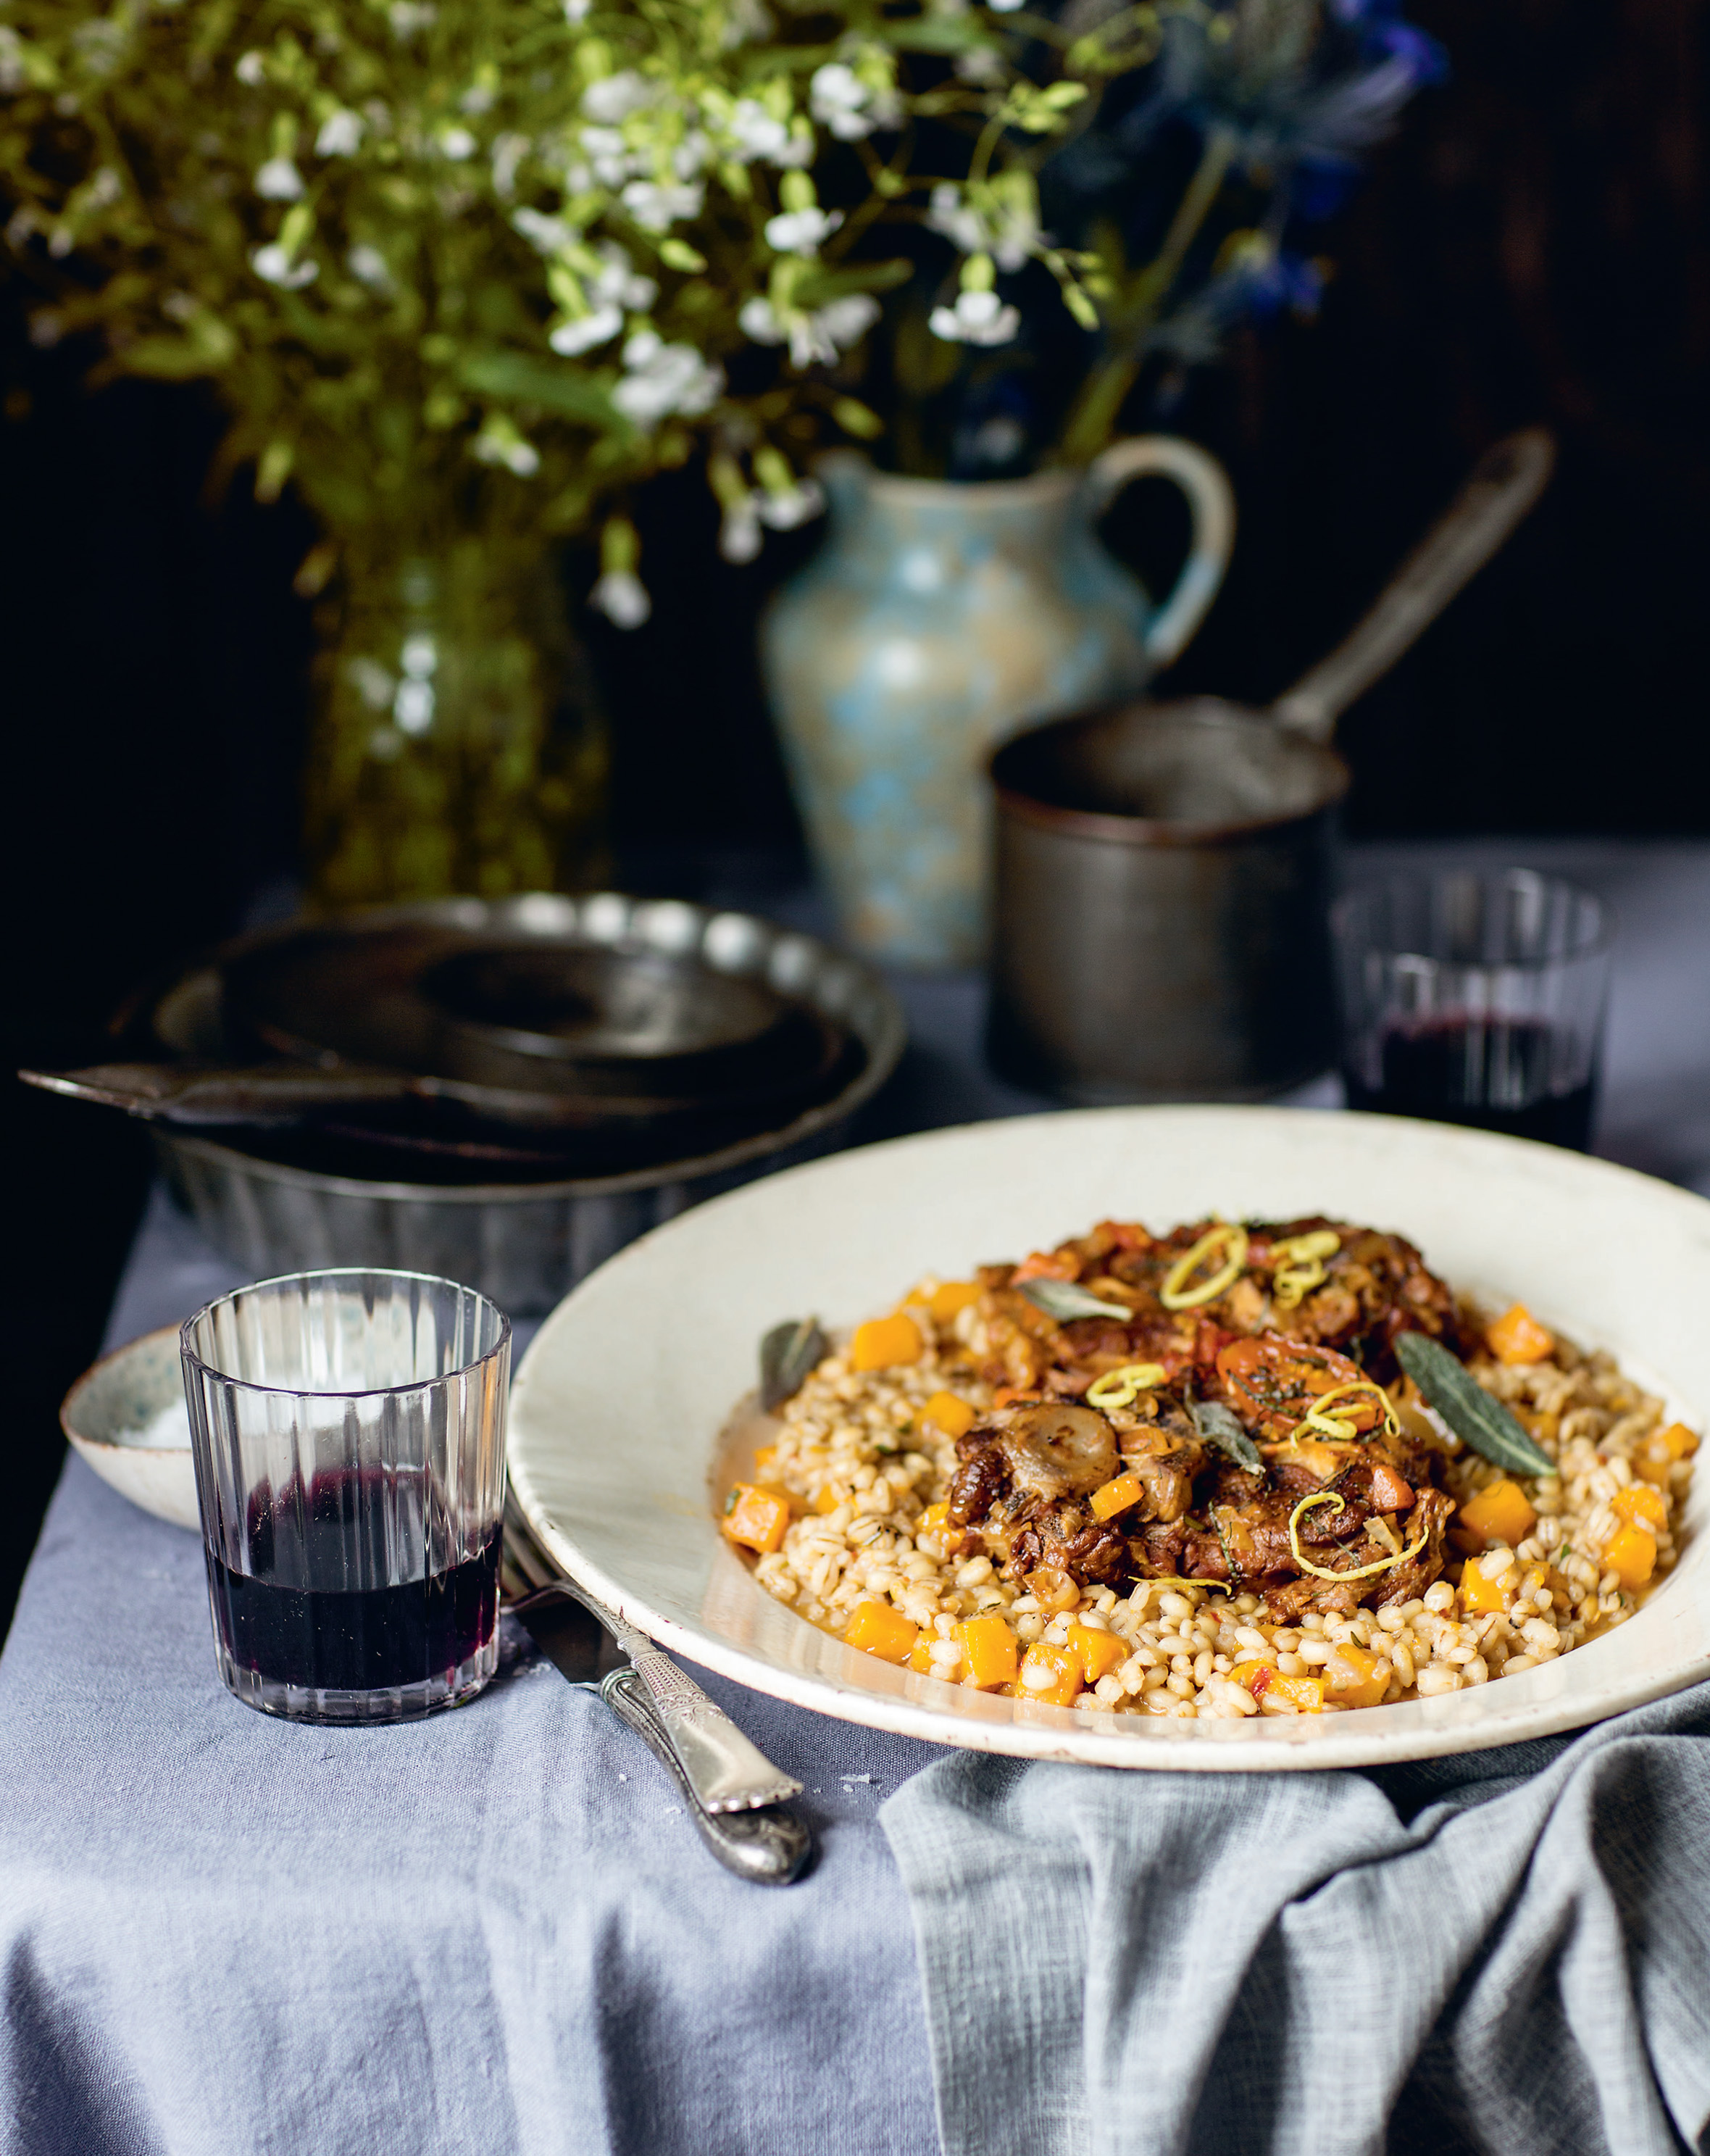 Lamb neck osso buco with pearl barley + squash risotto